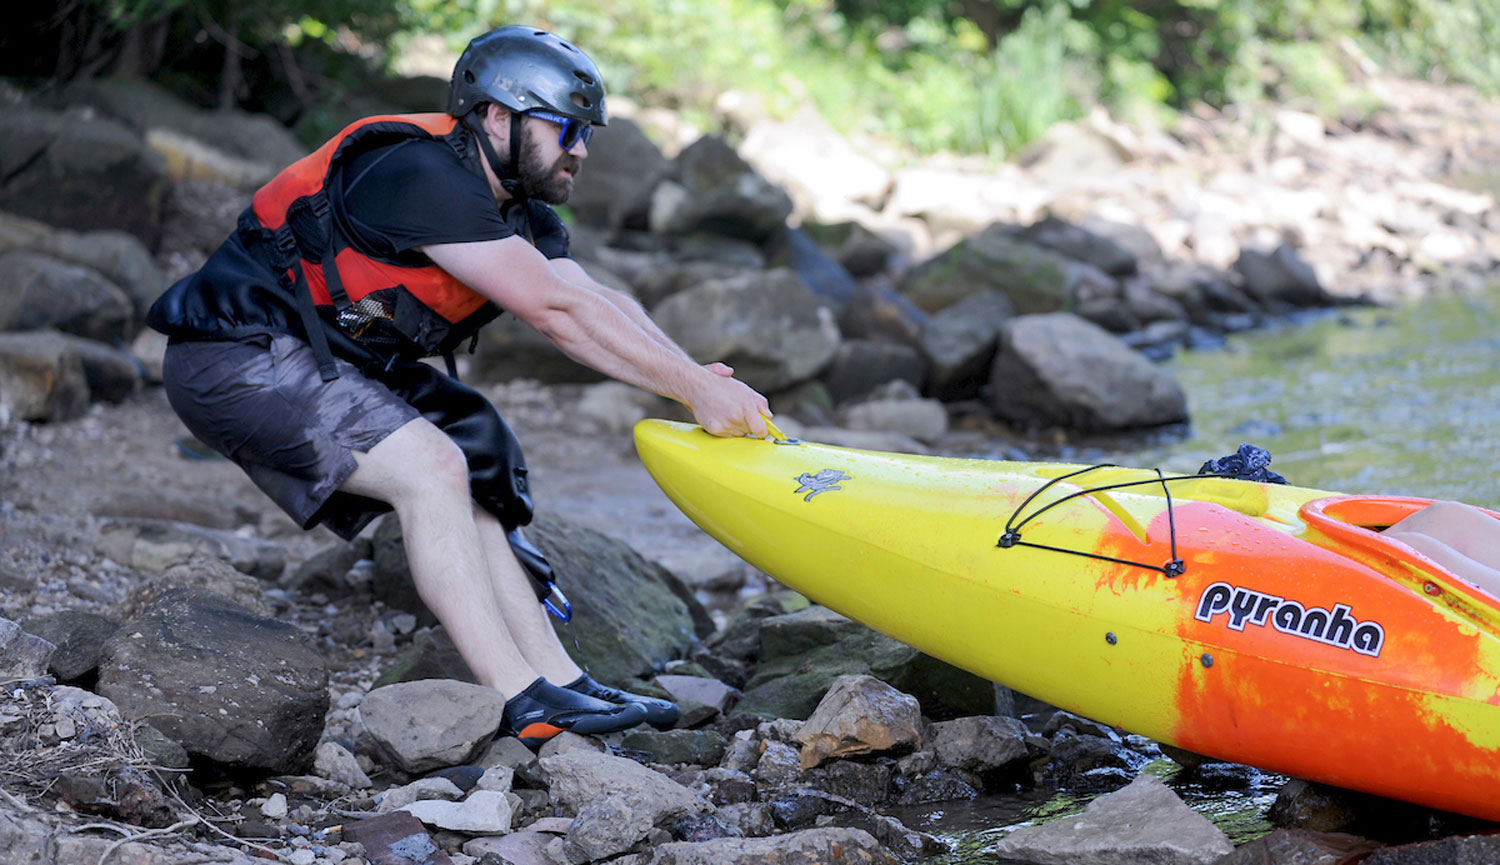 A Kent State University student pulls a kayak up on the bank of the Cuyahoga River.